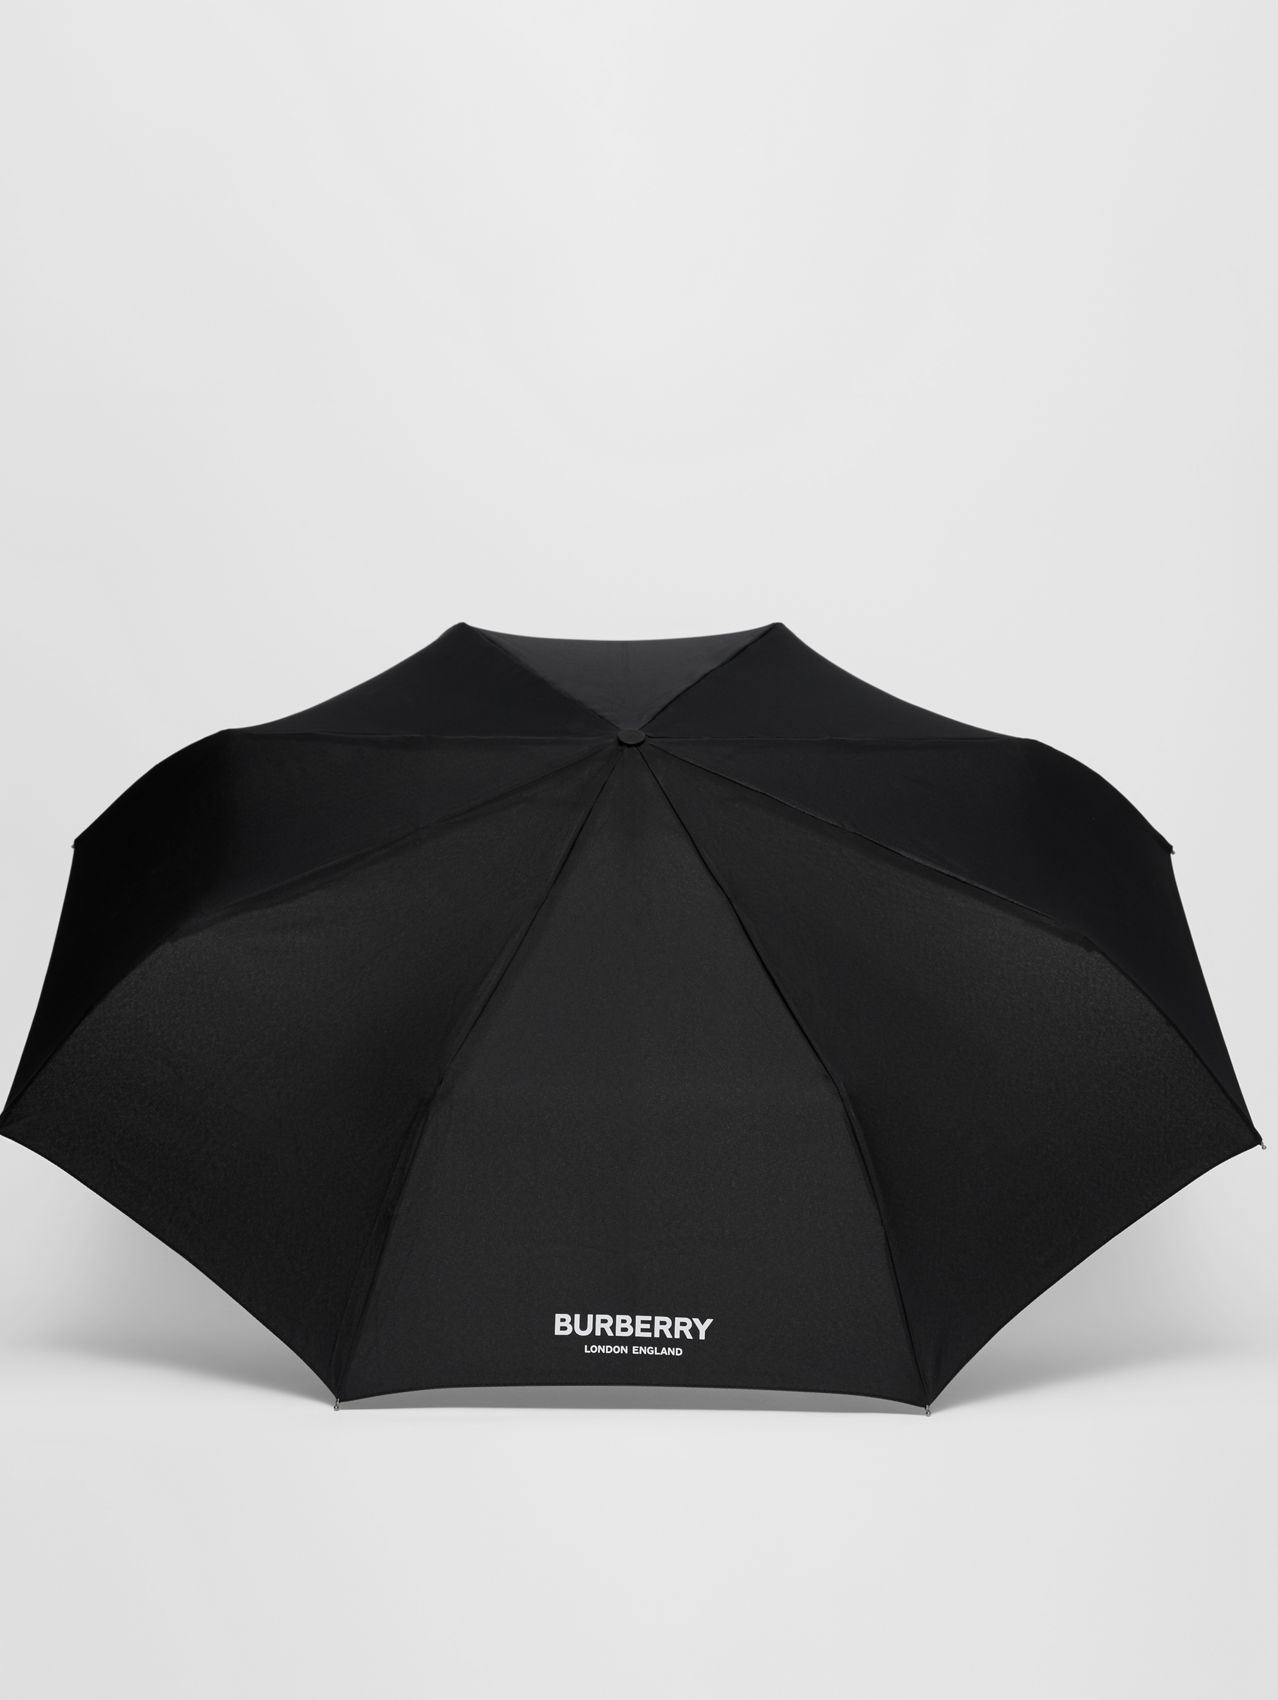 Logo Print Folding Umbrella in Black